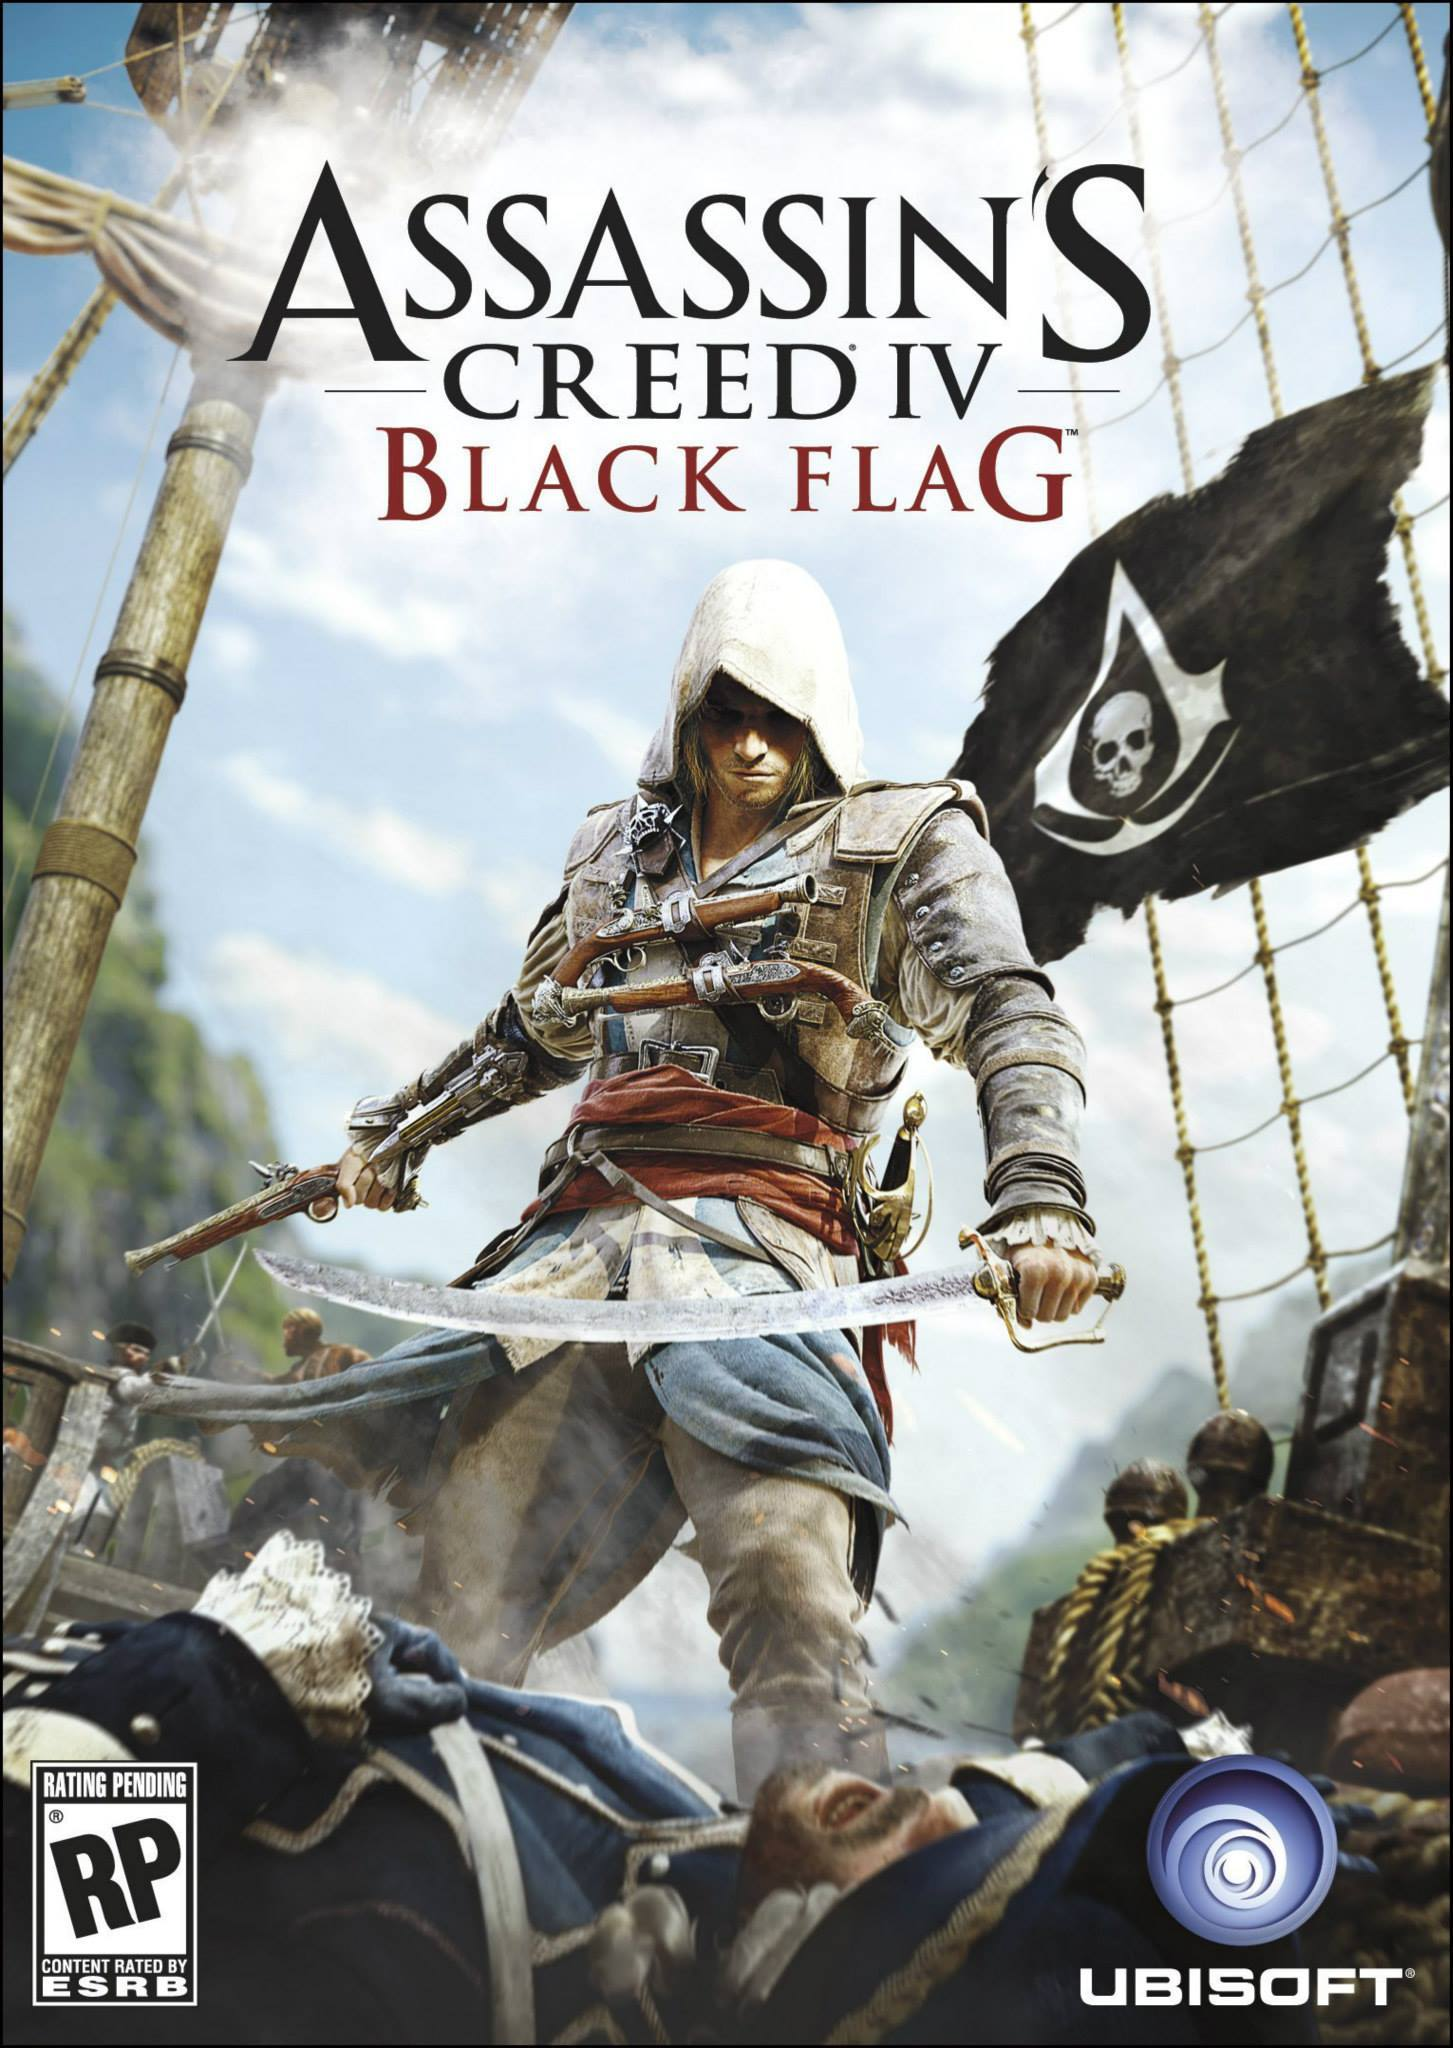 Assassin's Creed IV: Black Flag (PS3) Review 6